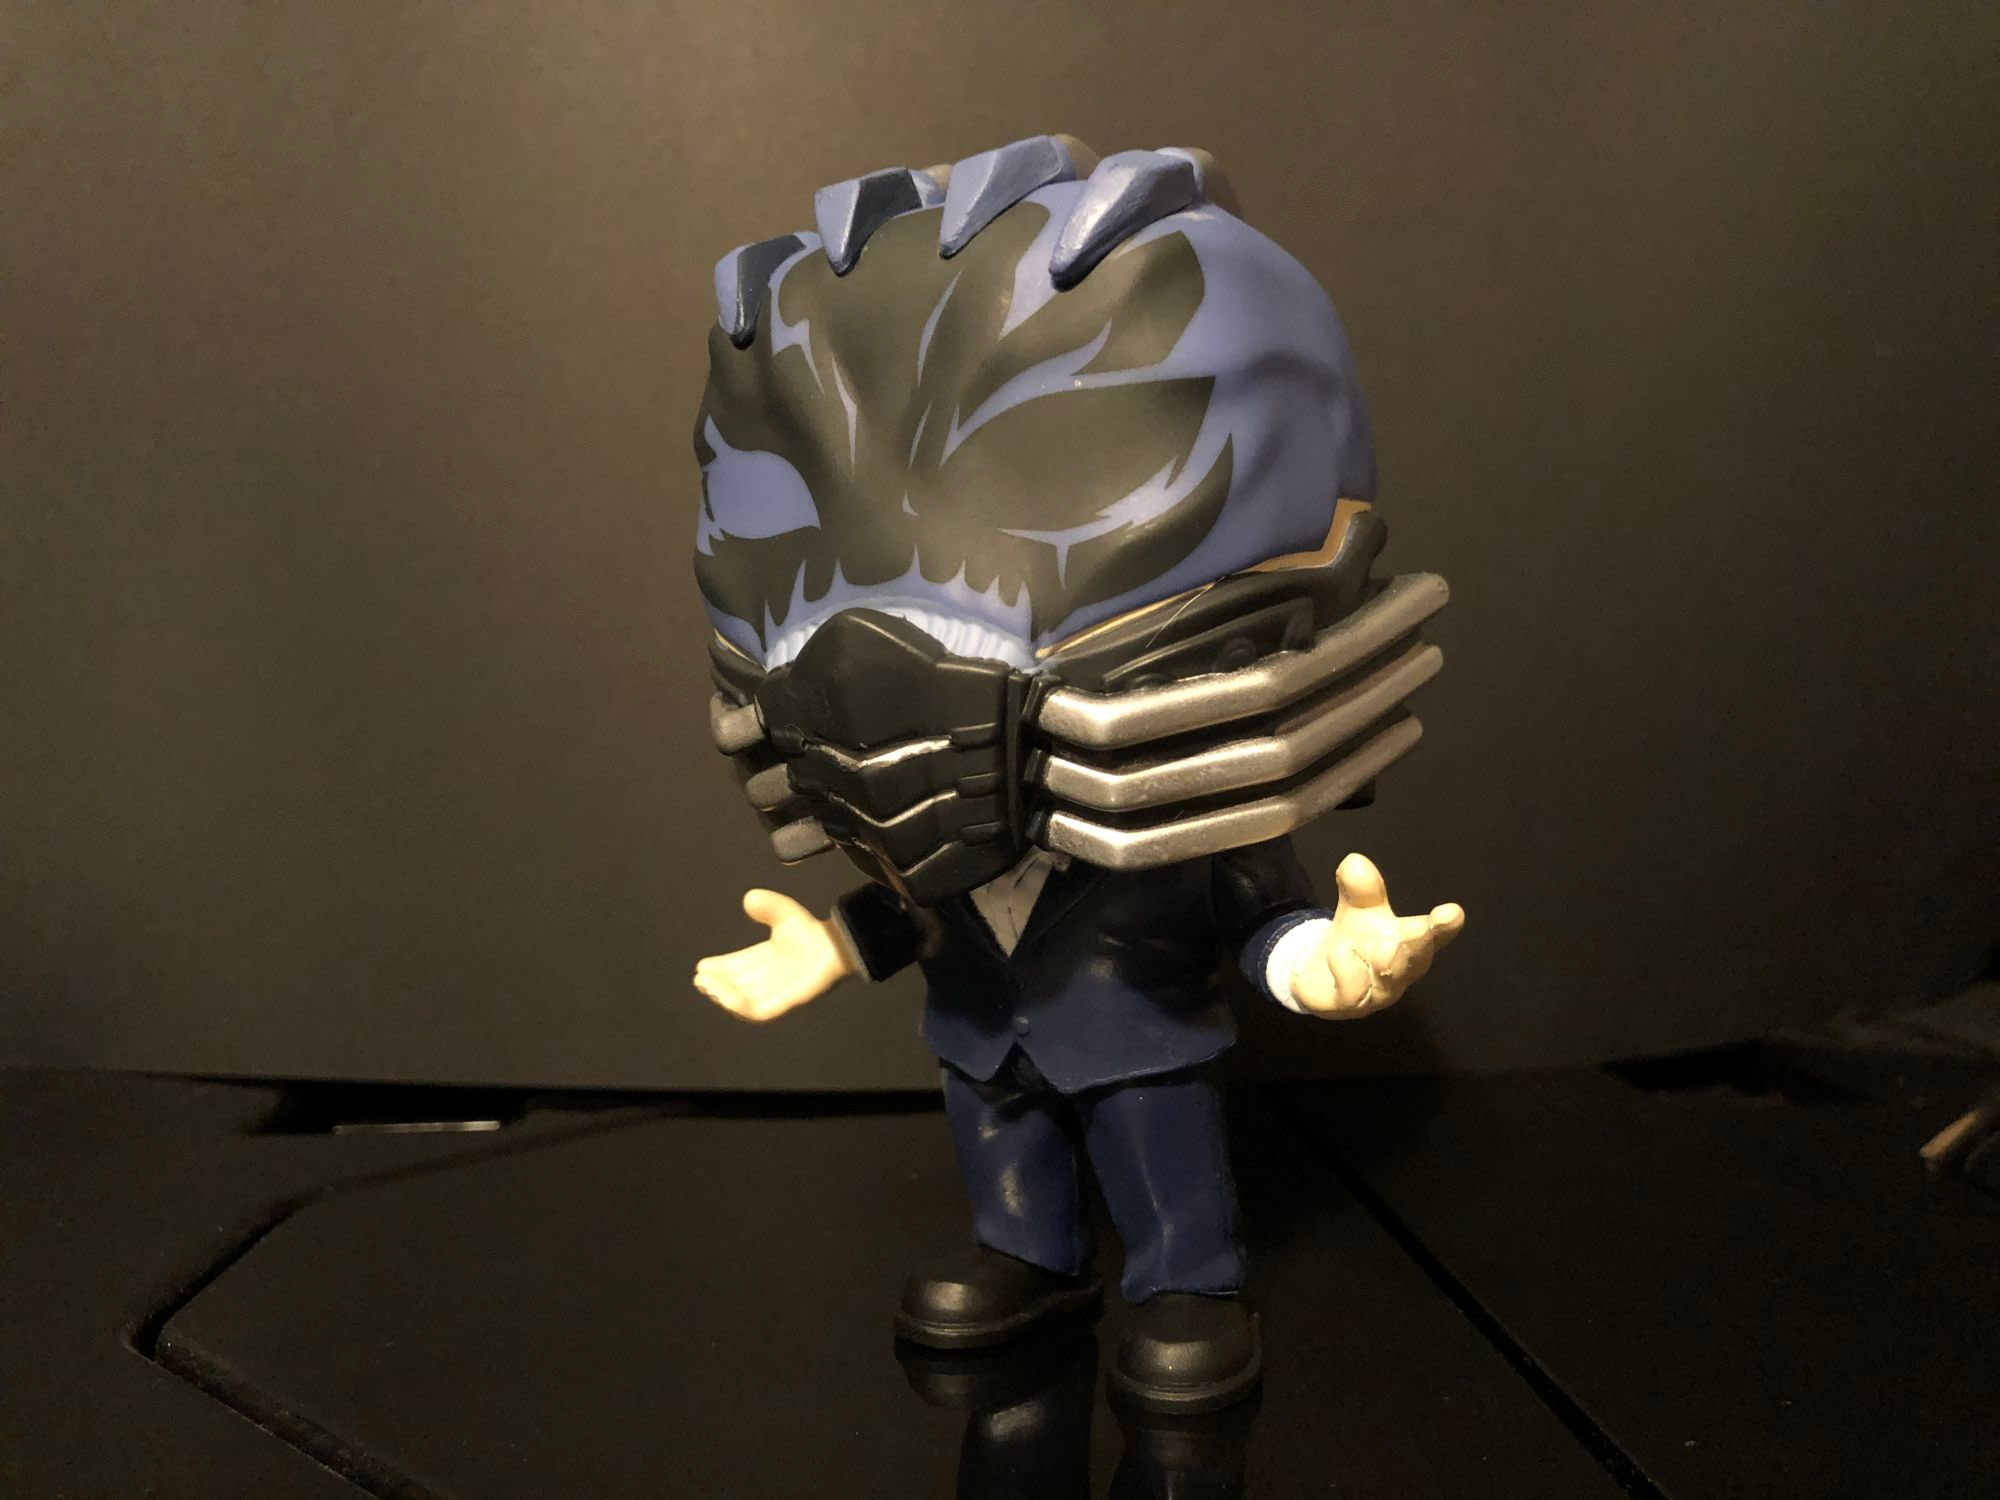 League of Villains from MHA Get Their Own Funko Pops [Review]